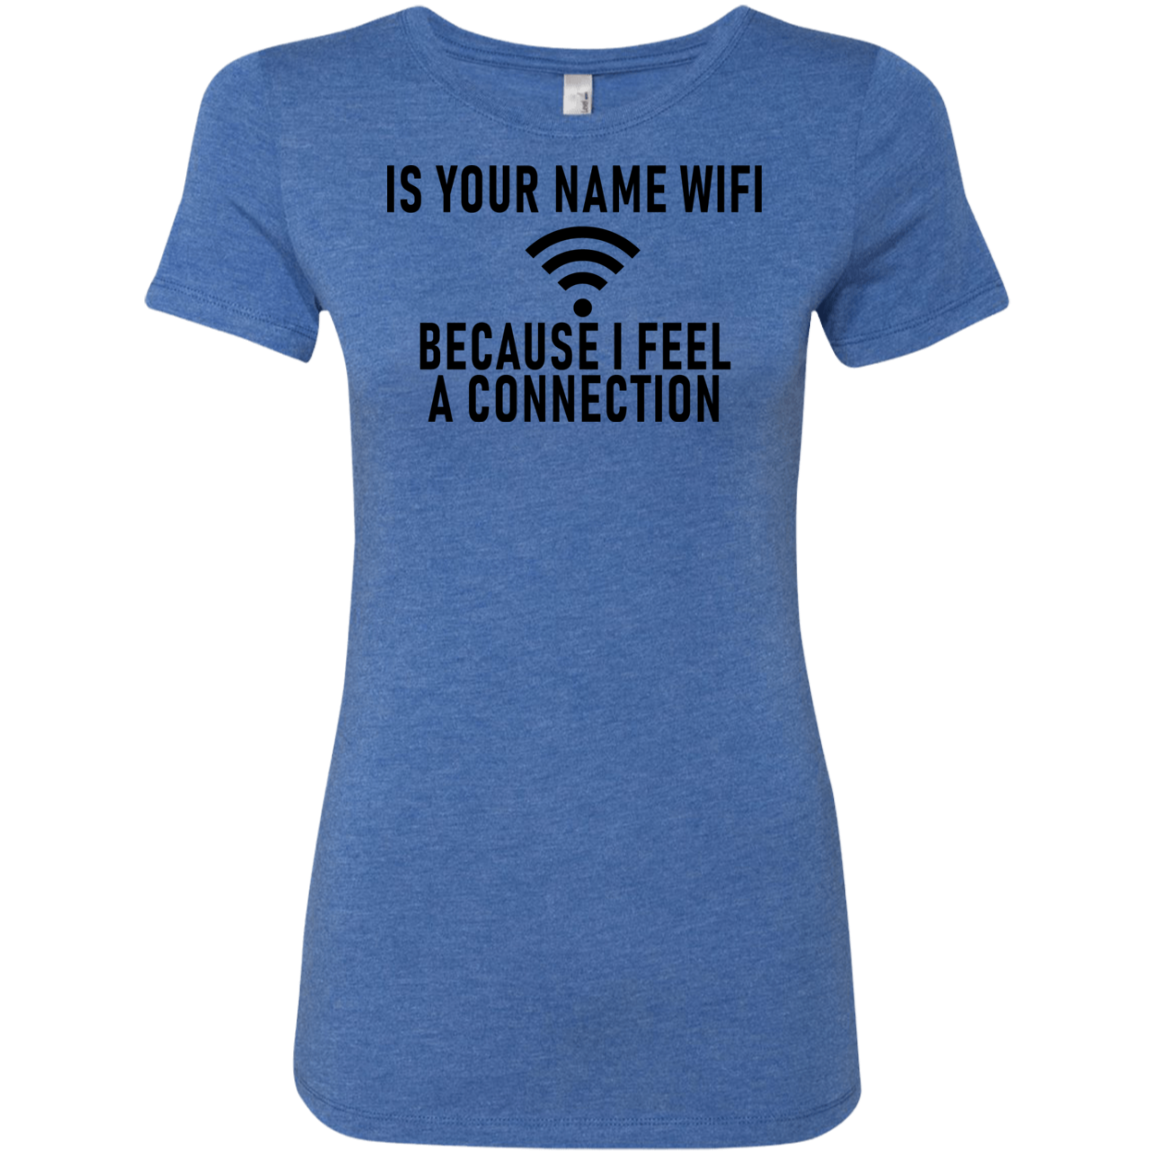 I Your Name WiFi Because I Feel A Connection Women's Classic Tee